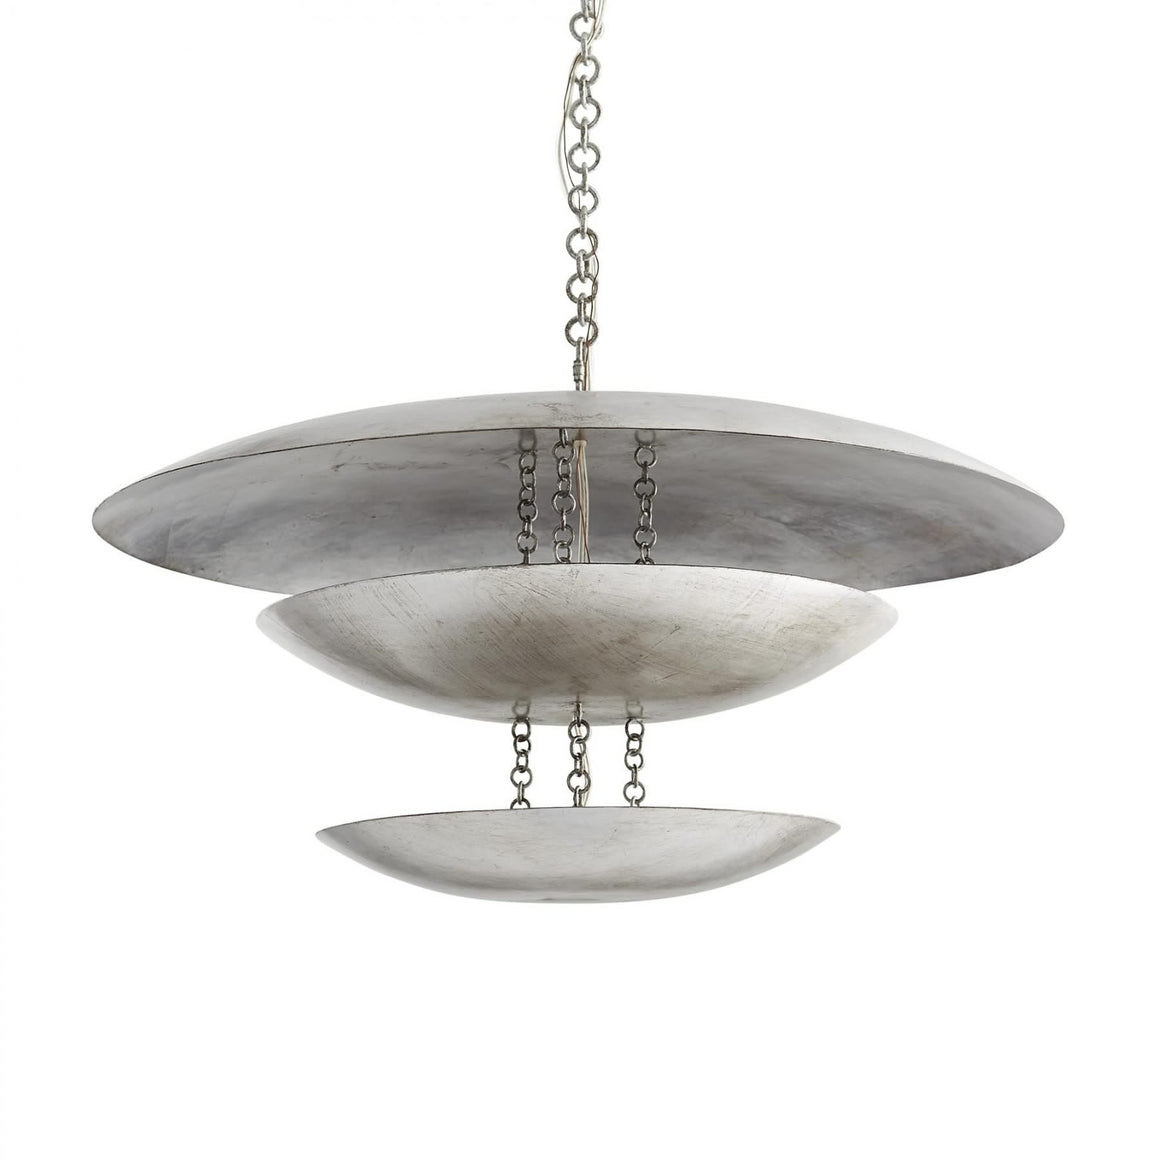 Florko Chandelier 1p-8200Chandelier - Graham's Lighting Memphis, TN